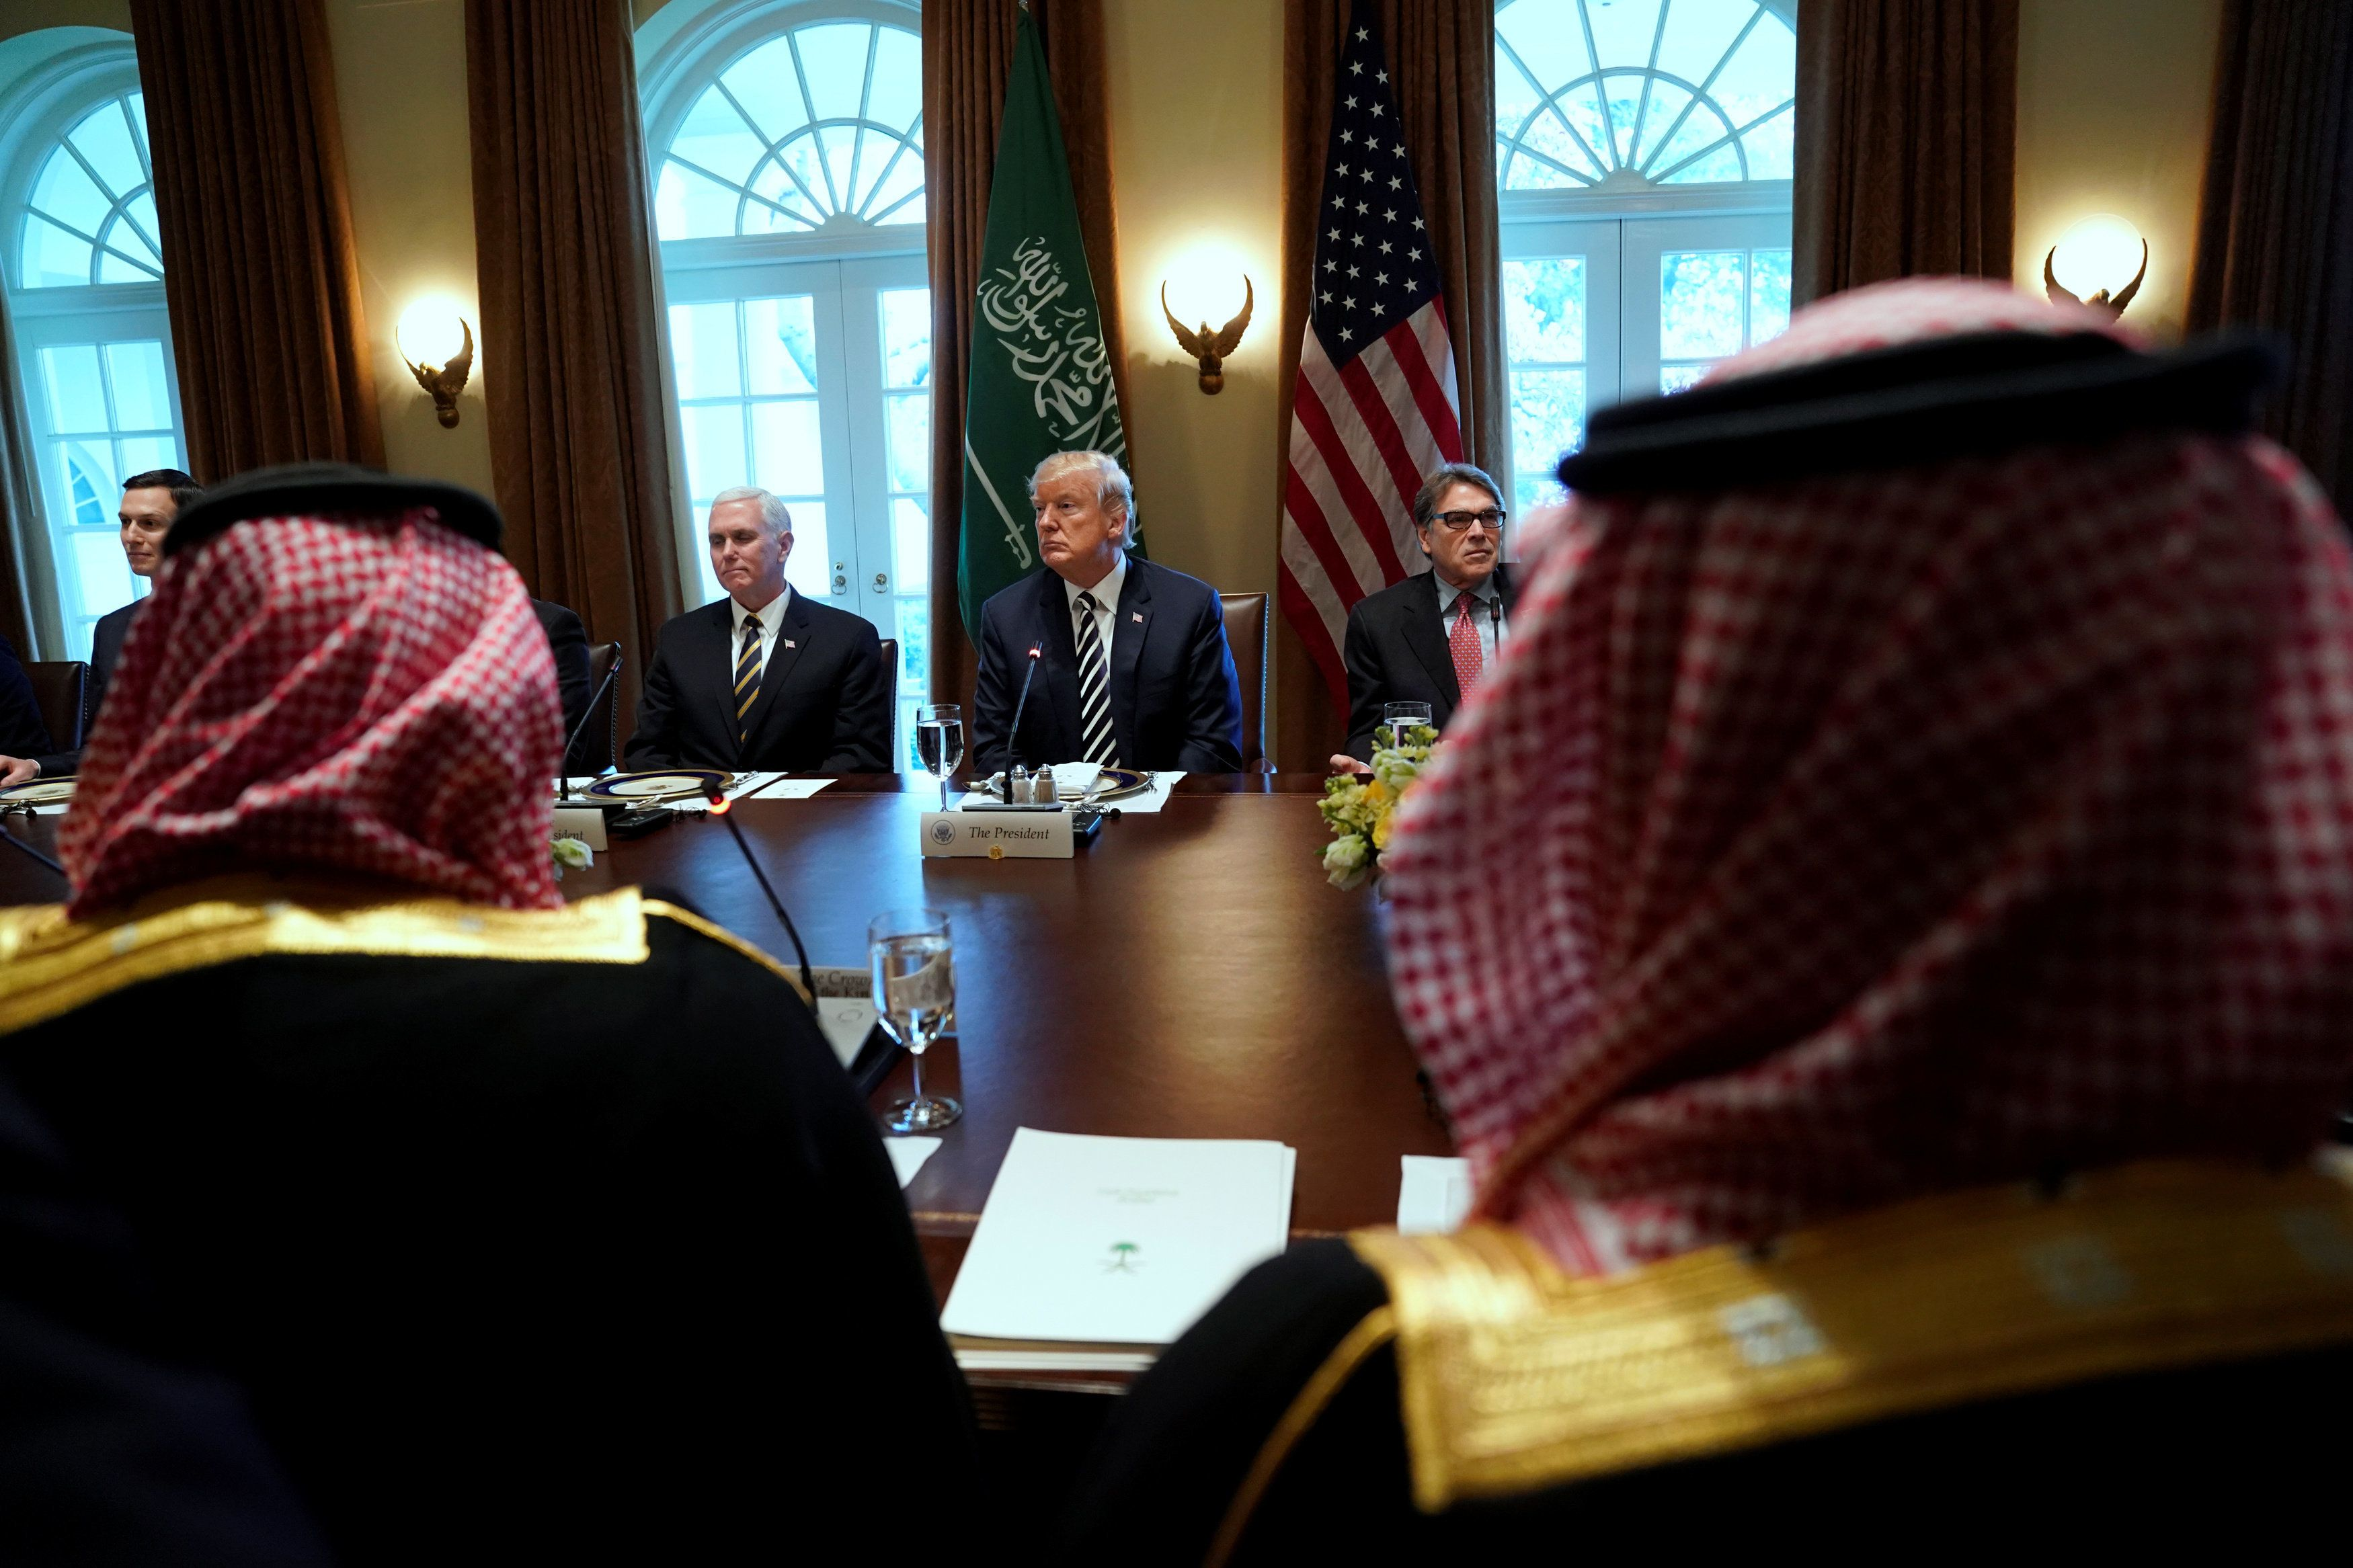 U.S. President Donald Trump, flanked by ?Vice President Mike Pence? (L) and Energy SecretaryRick Perry (R), hosts Saudi Arabia's Crown Prince Mohammed bin Salman for a working lunch at the White House in Washington, U.S. March 20, 2018.  REUTERS/Jonathan Ernst